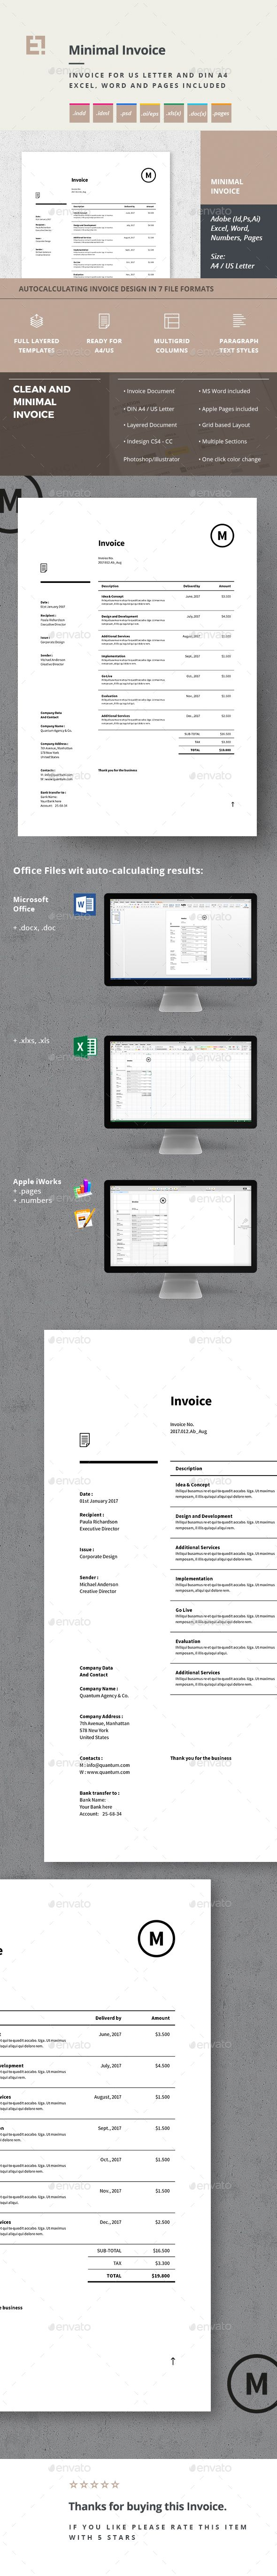 free proposal template%0A  Invoice   Proposals  u     Invoices  Stationery Download here  https